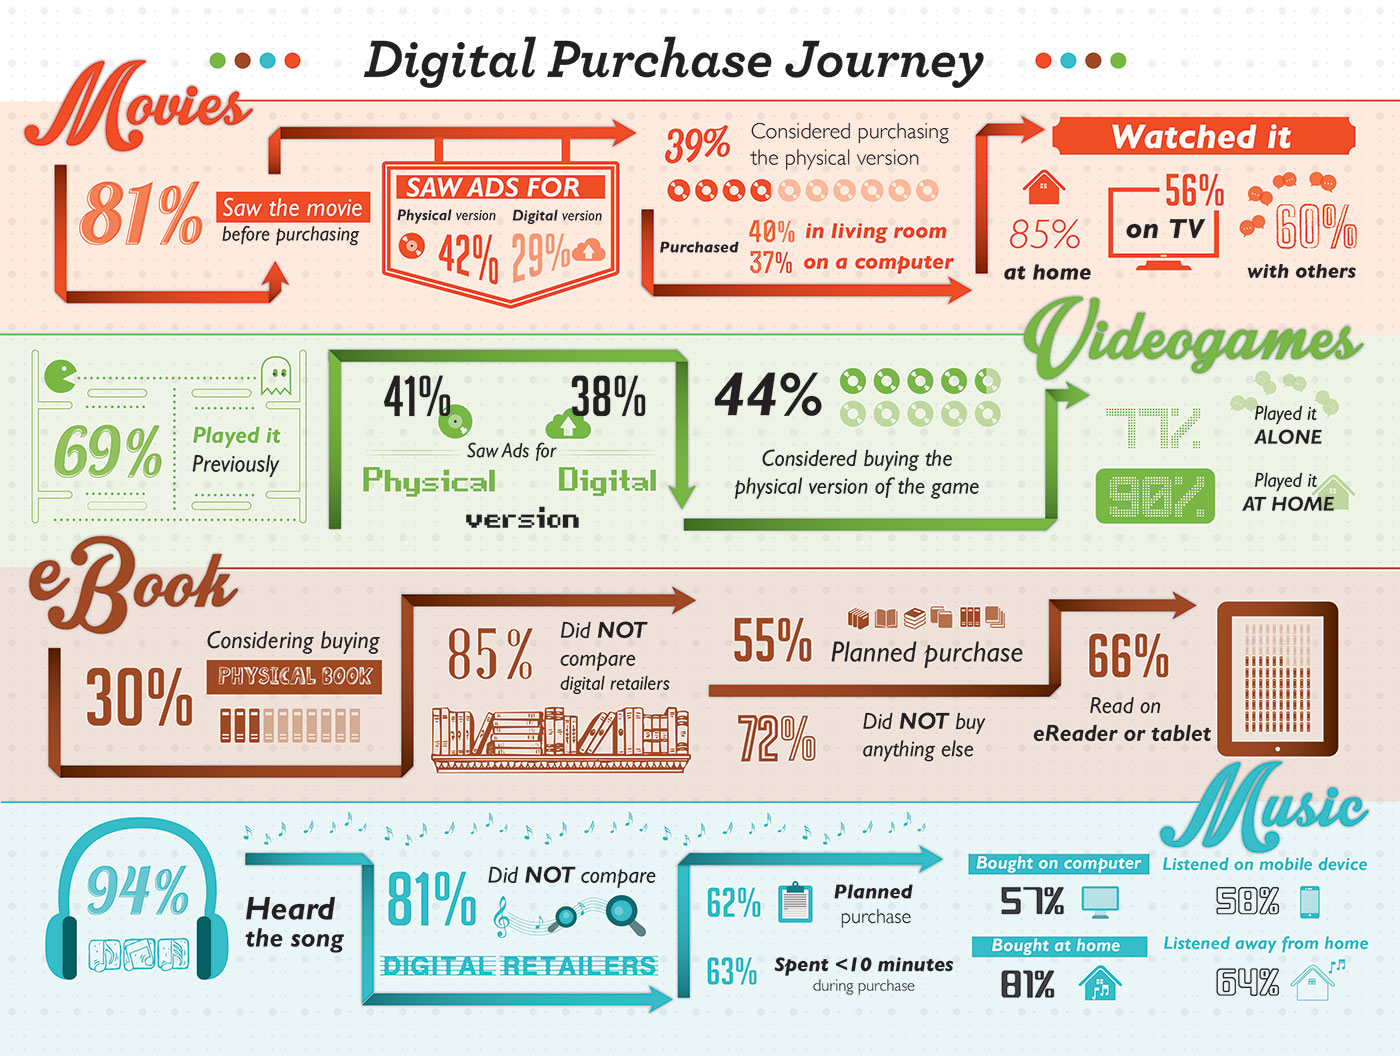 Digital Purchase Journey - Market Research